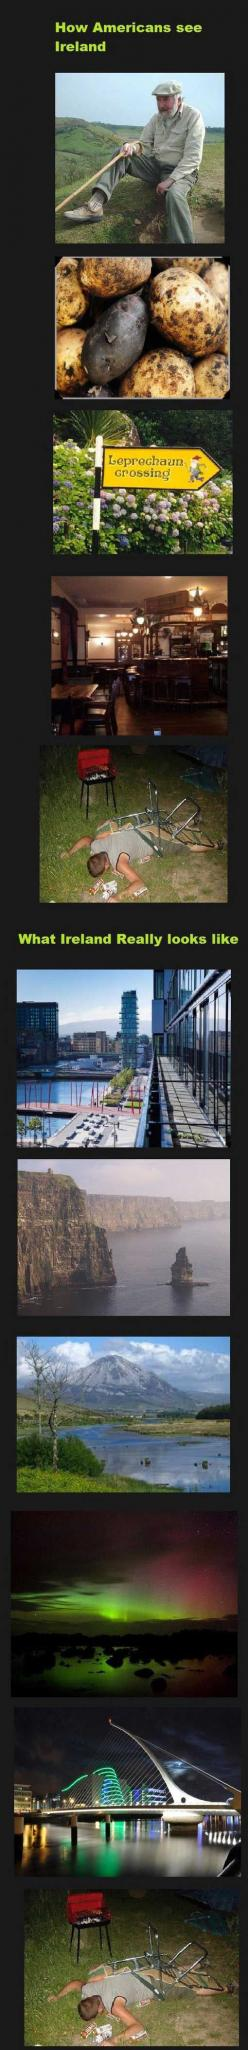 What I Learned After Traveling to Ireland This Year